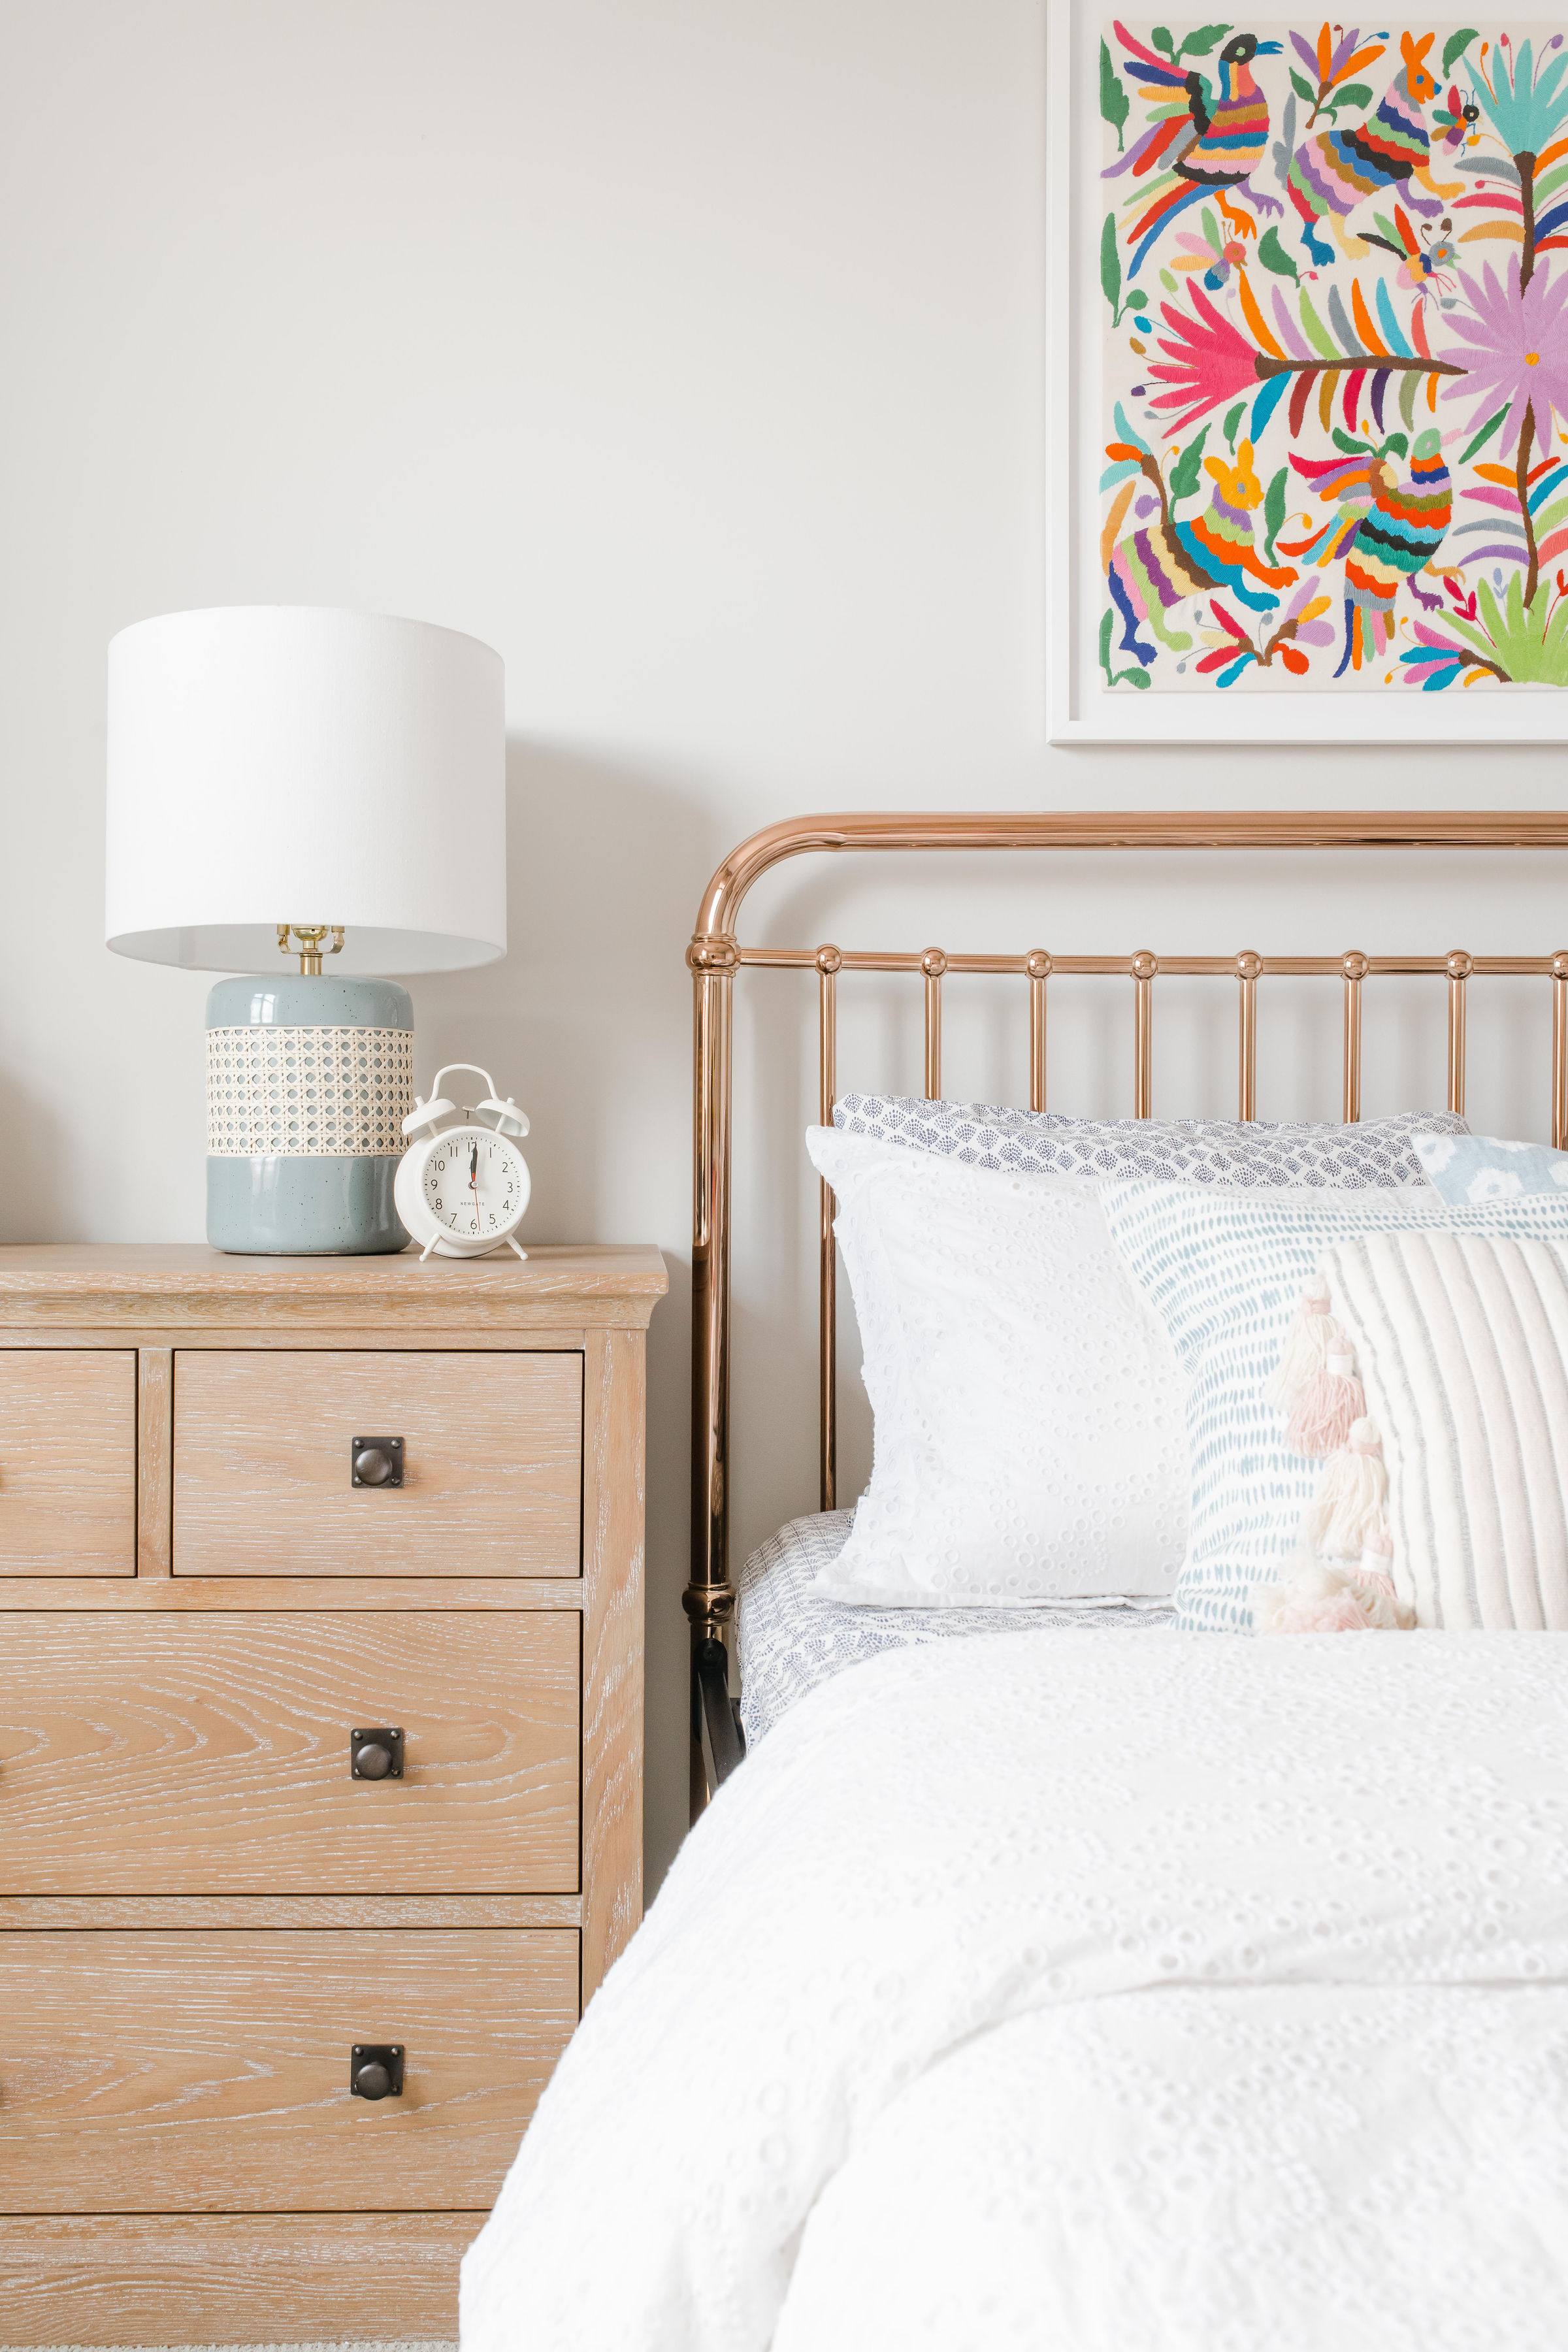 parkland project kids bedroom - the habitat collective - interior design